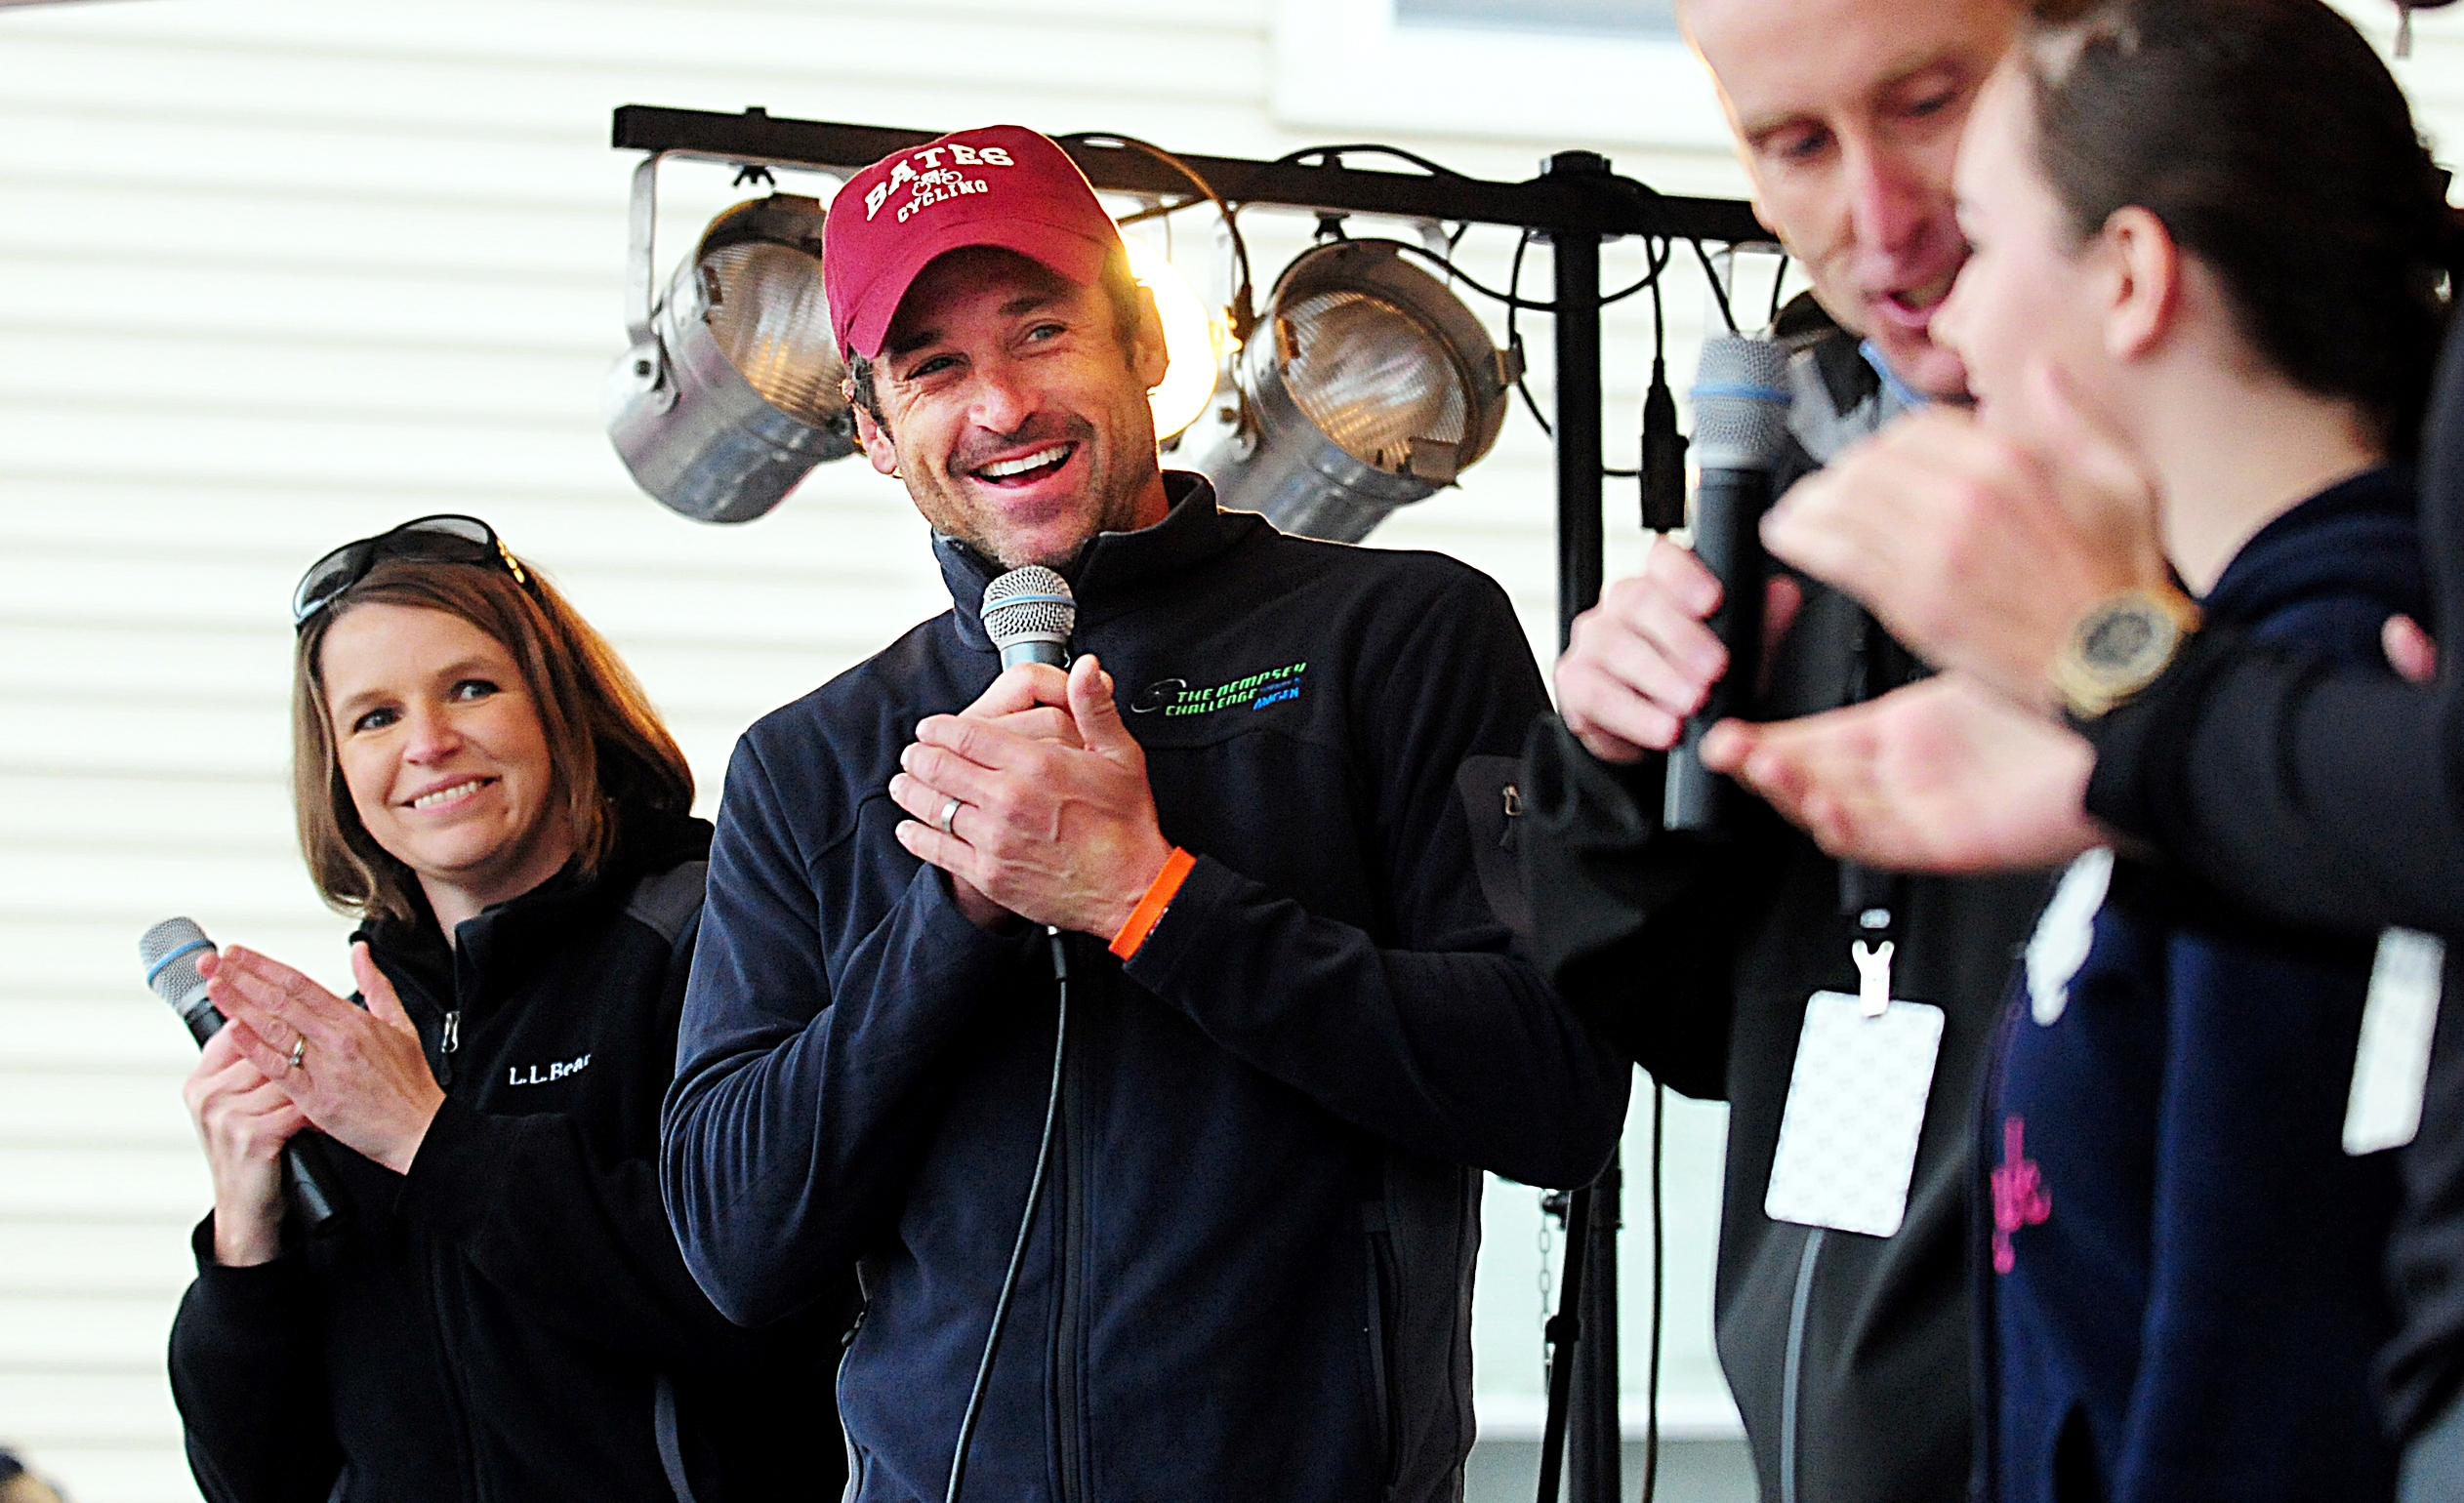 Patrick Dempsey addresses the crowd Saturday during the fifth annual Dempsey Challenge in Lewiston, Maine.  The event netted more than $1 million for a local cancer center.